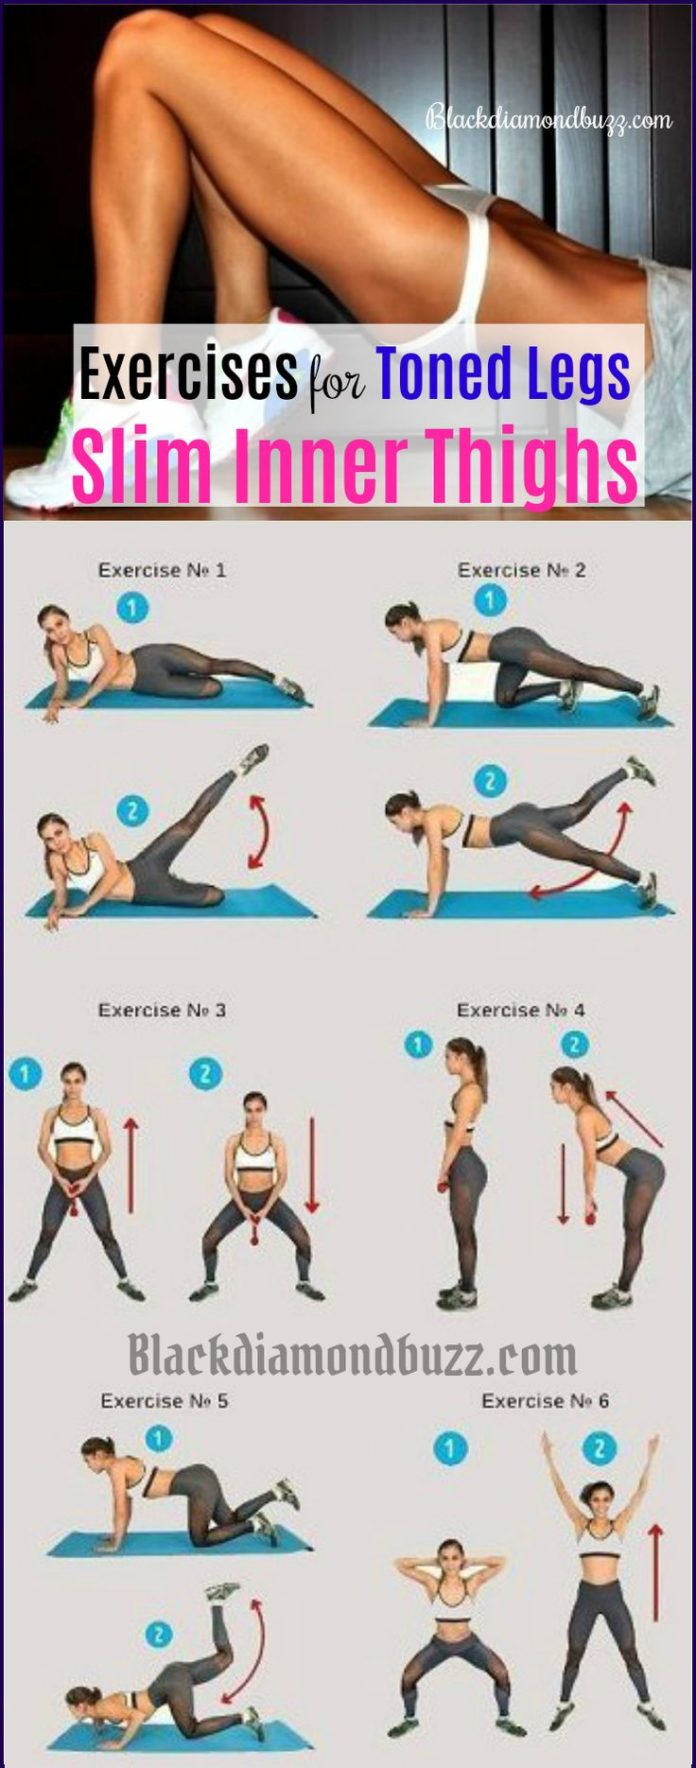 Workout Plans : Best exercise for slim inner thighs and toned legs